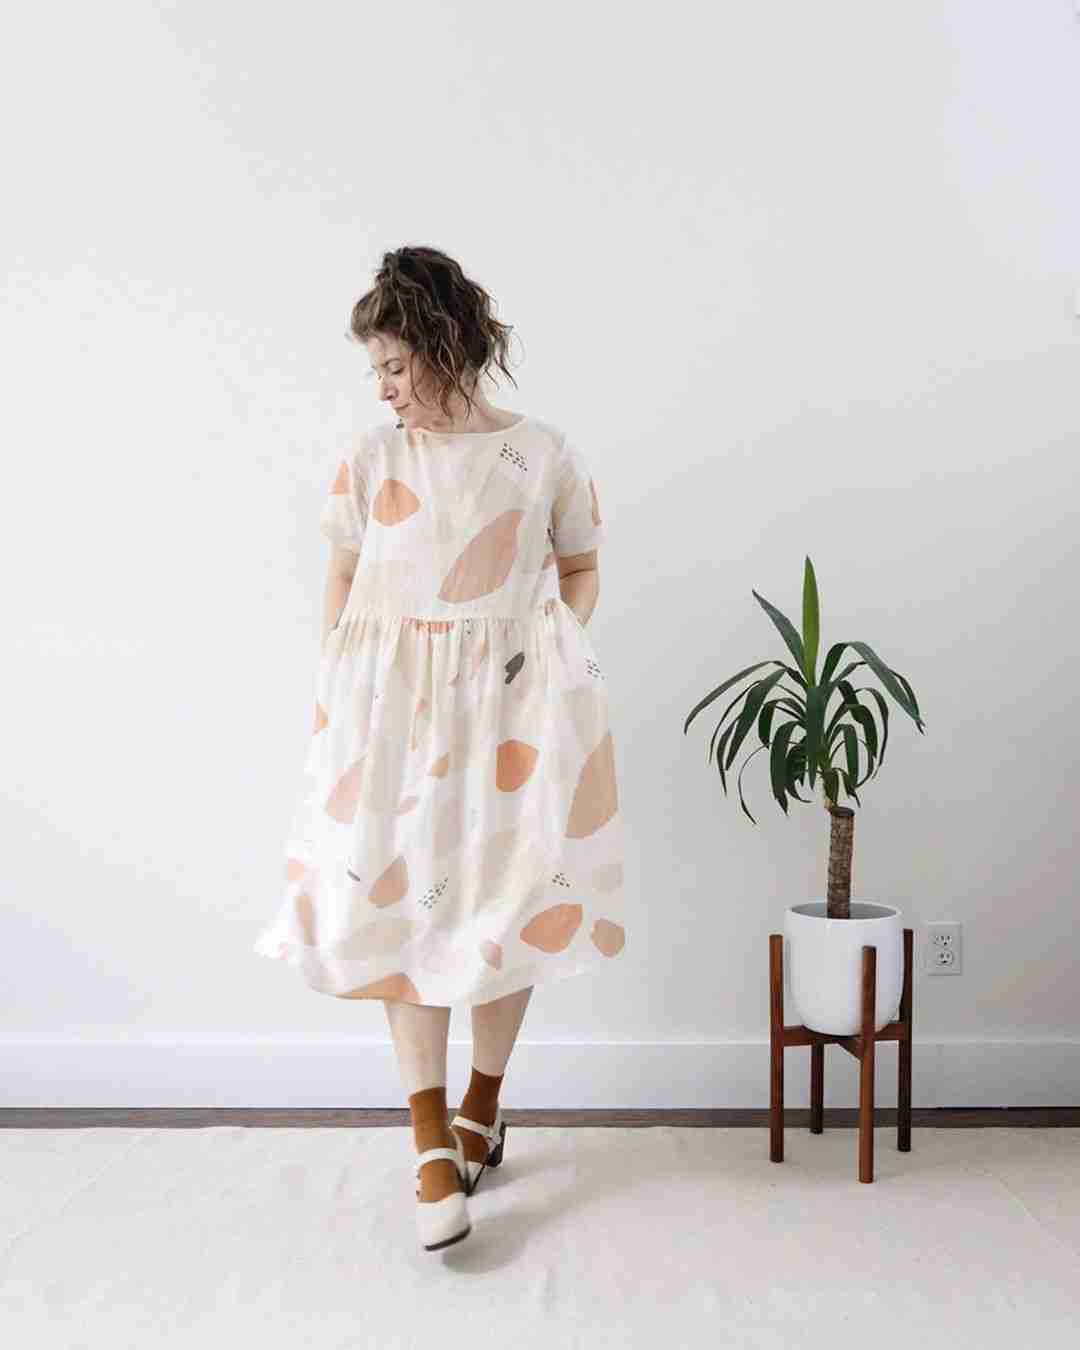 Minimalist Wardrobe Essentials - Printed Summer Dress